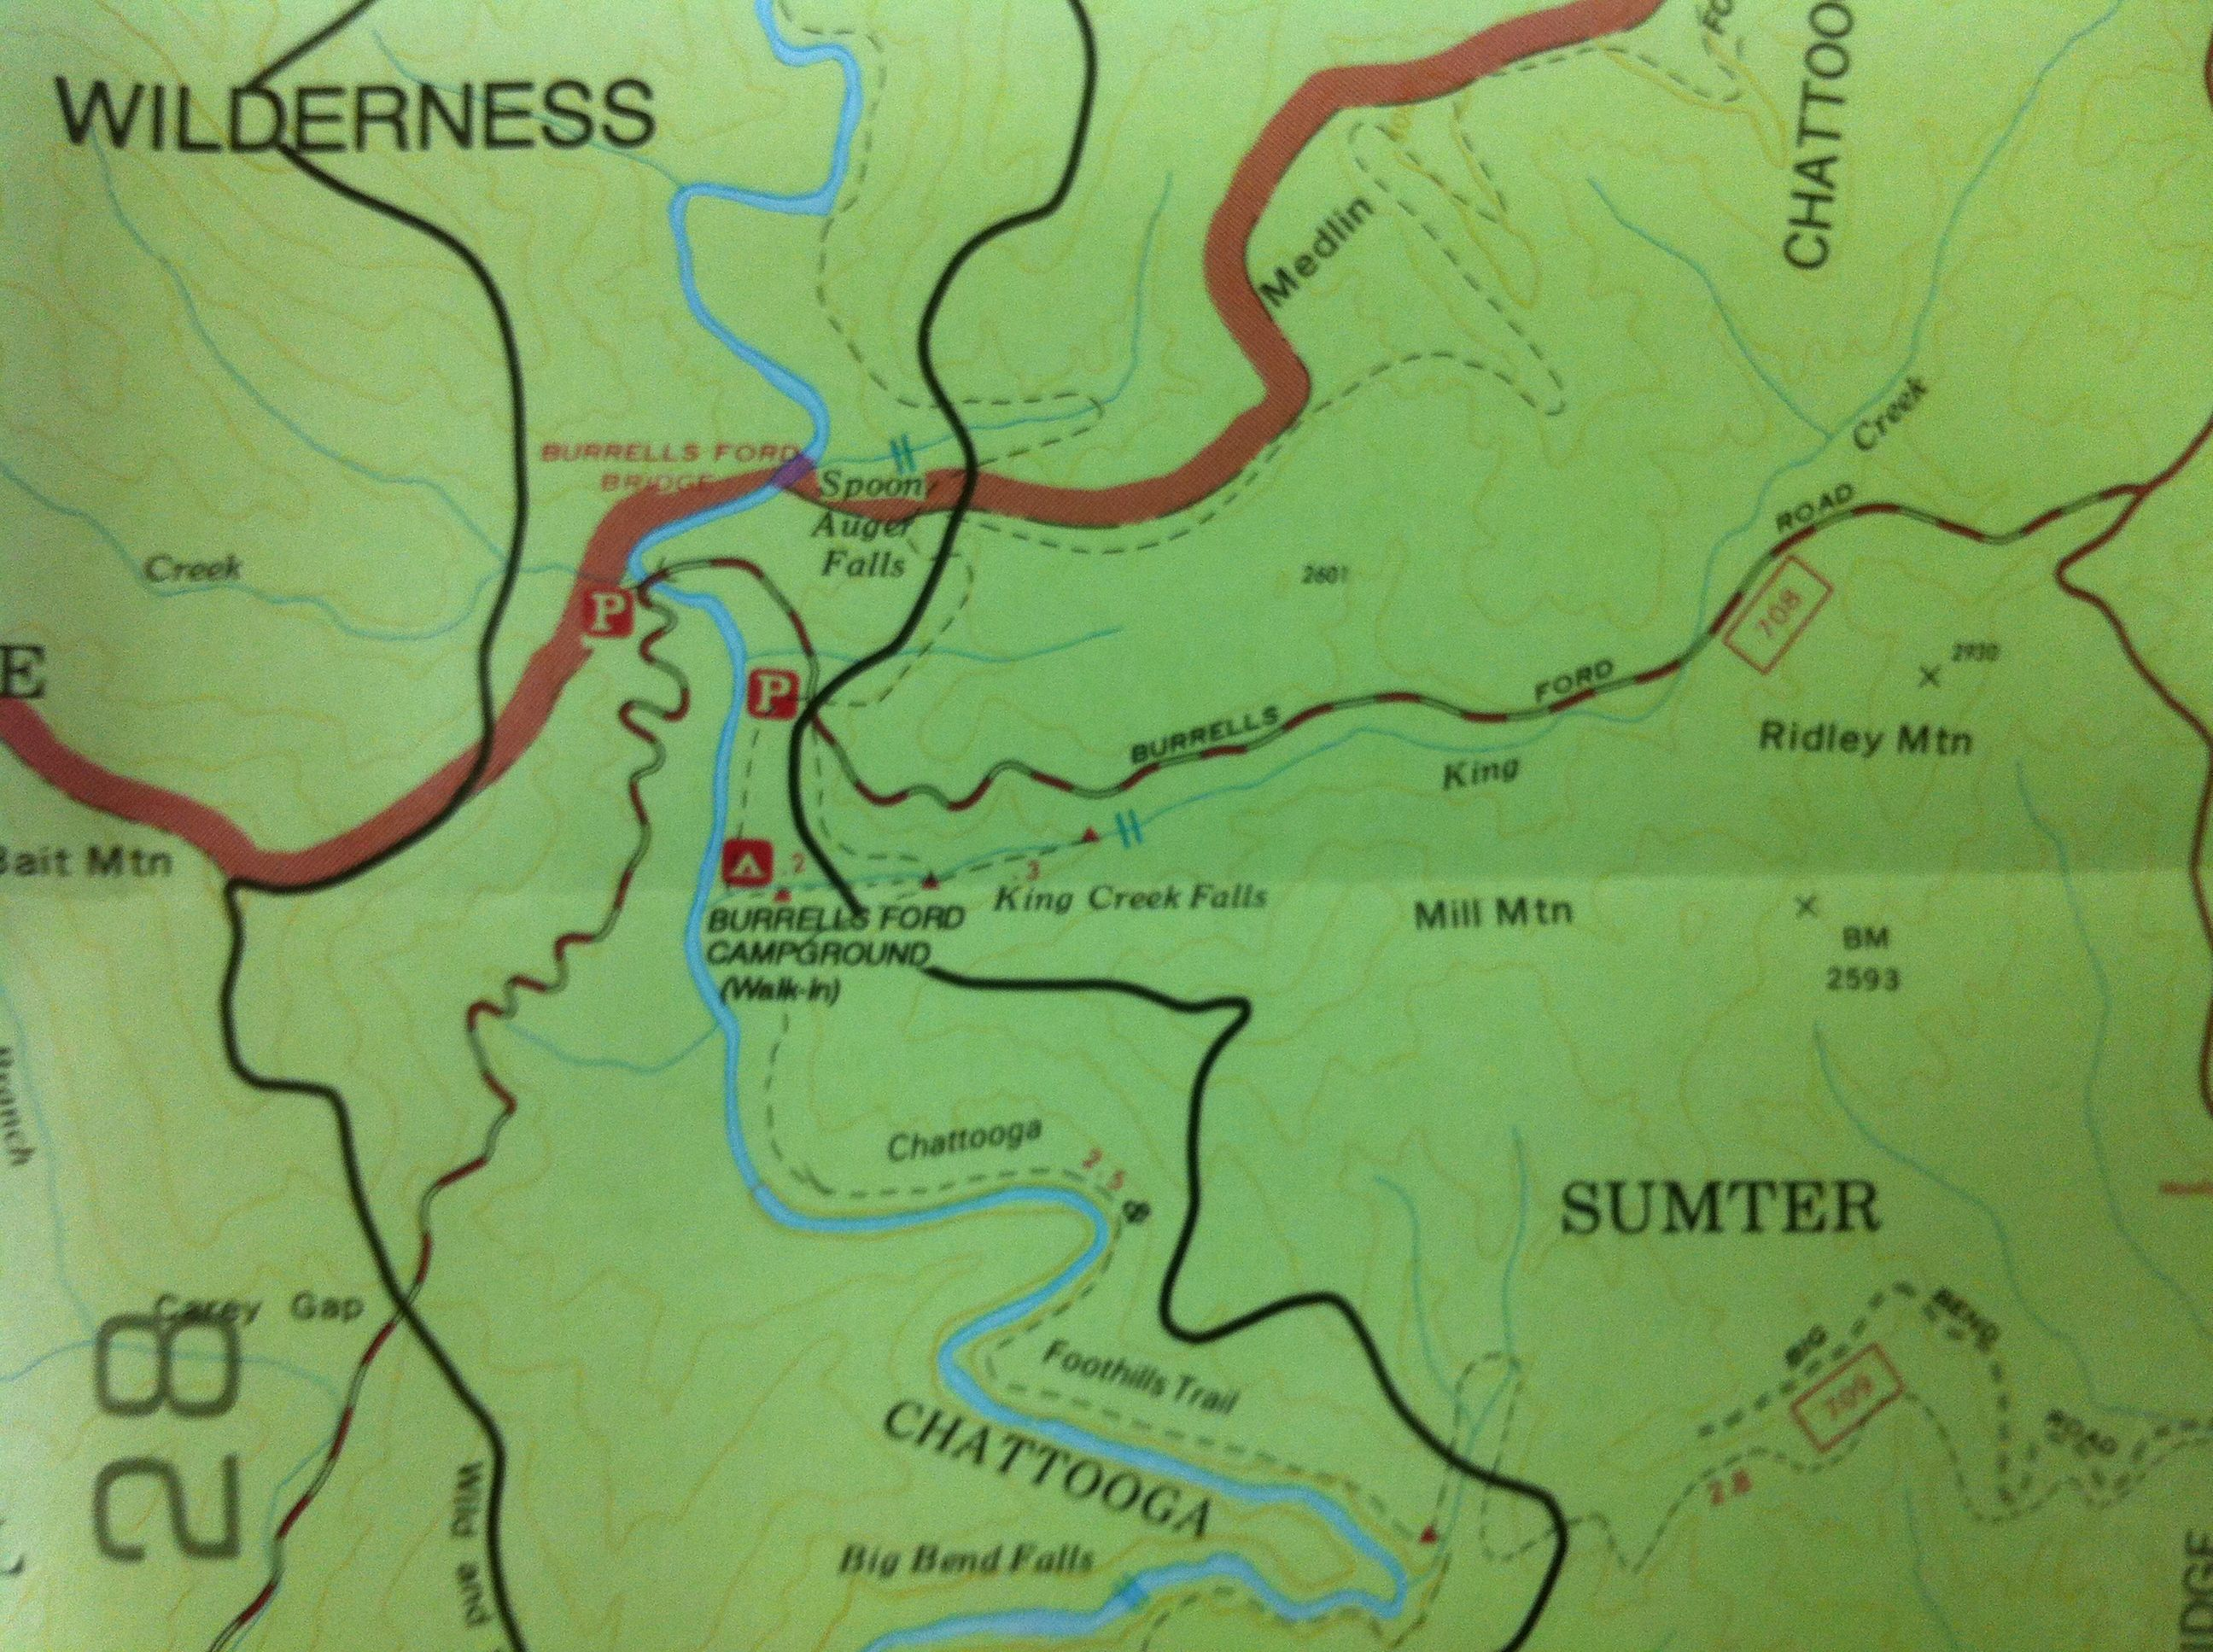 Francis Marion And Sumter National Forests Maps  Publications - Us forest service ecoregion map